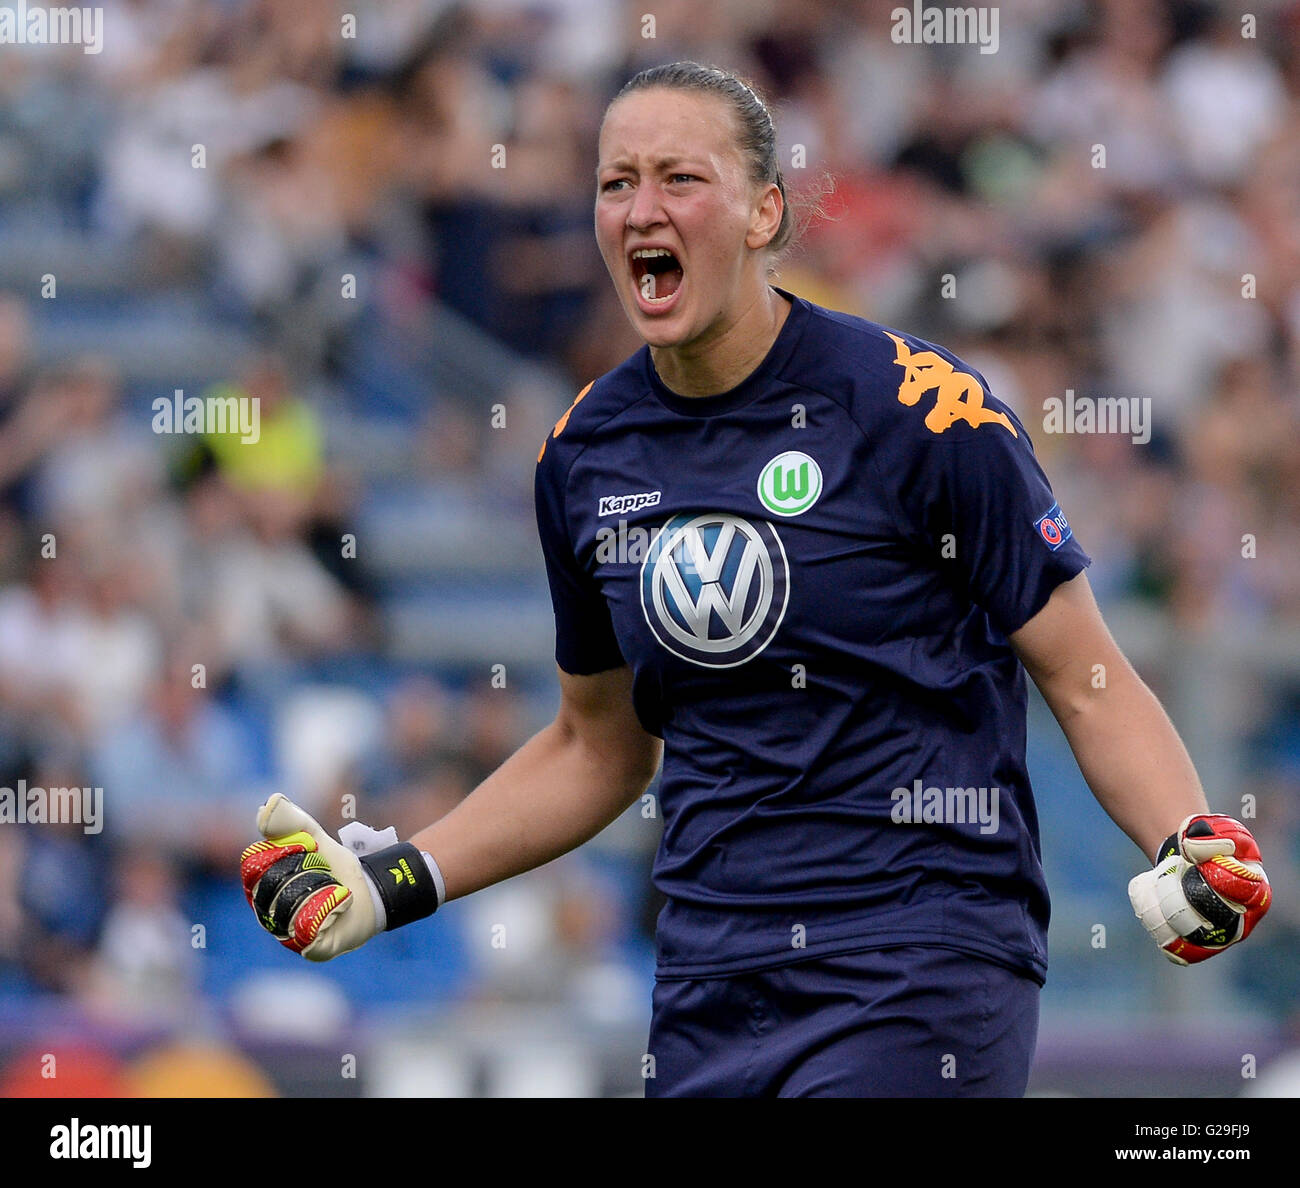 Almuth Schult Stock Photos & Almuth Schult Stock Images - Alamy